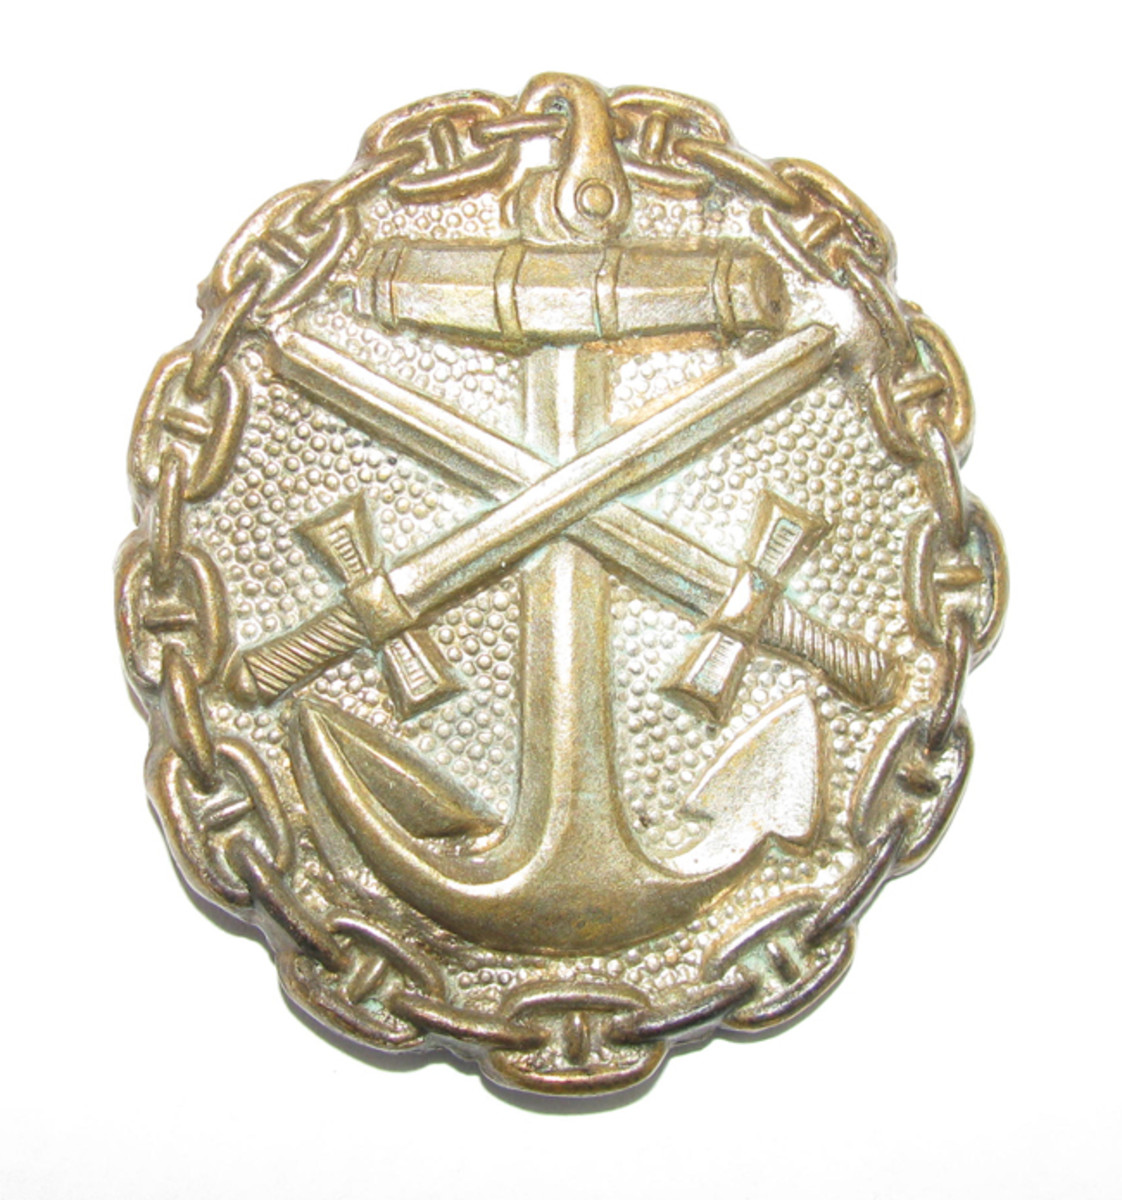 The Imperial Naval Wound Badge differed significantly in design from its army counterpart.